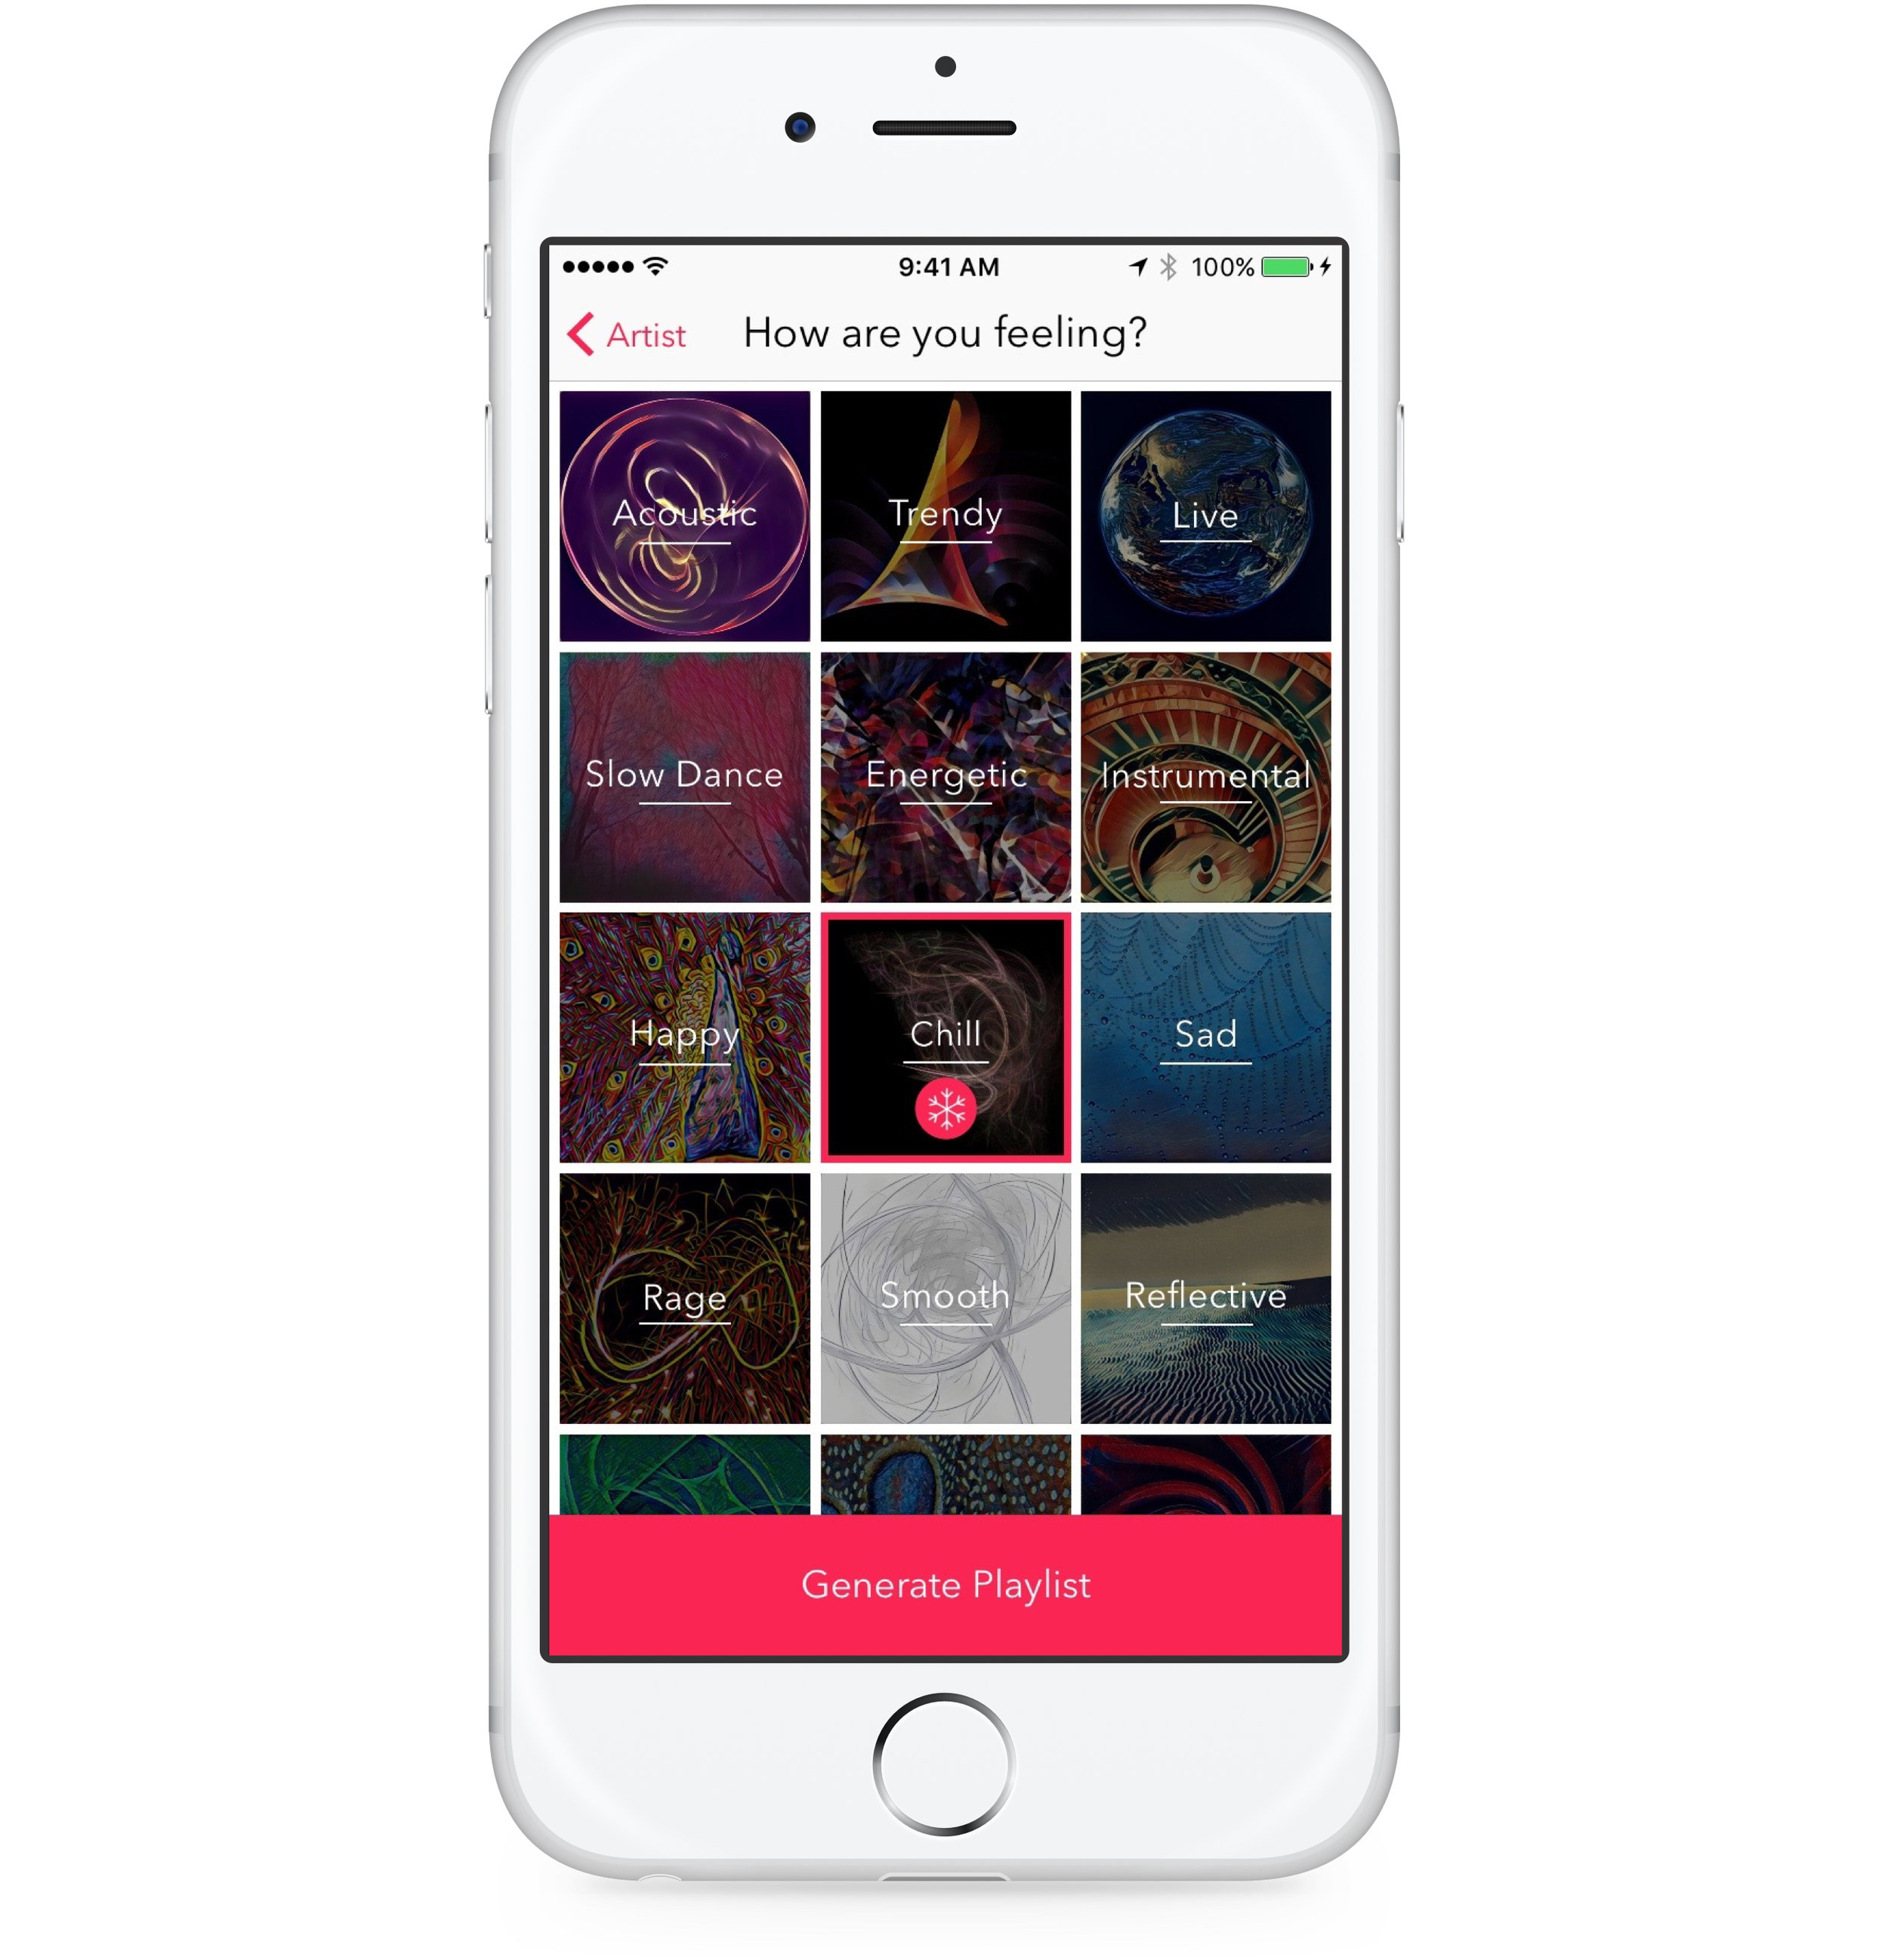 Choose from 18 diverse mood preferences - Build your own music video playlists inspired by your moods and save them for later.